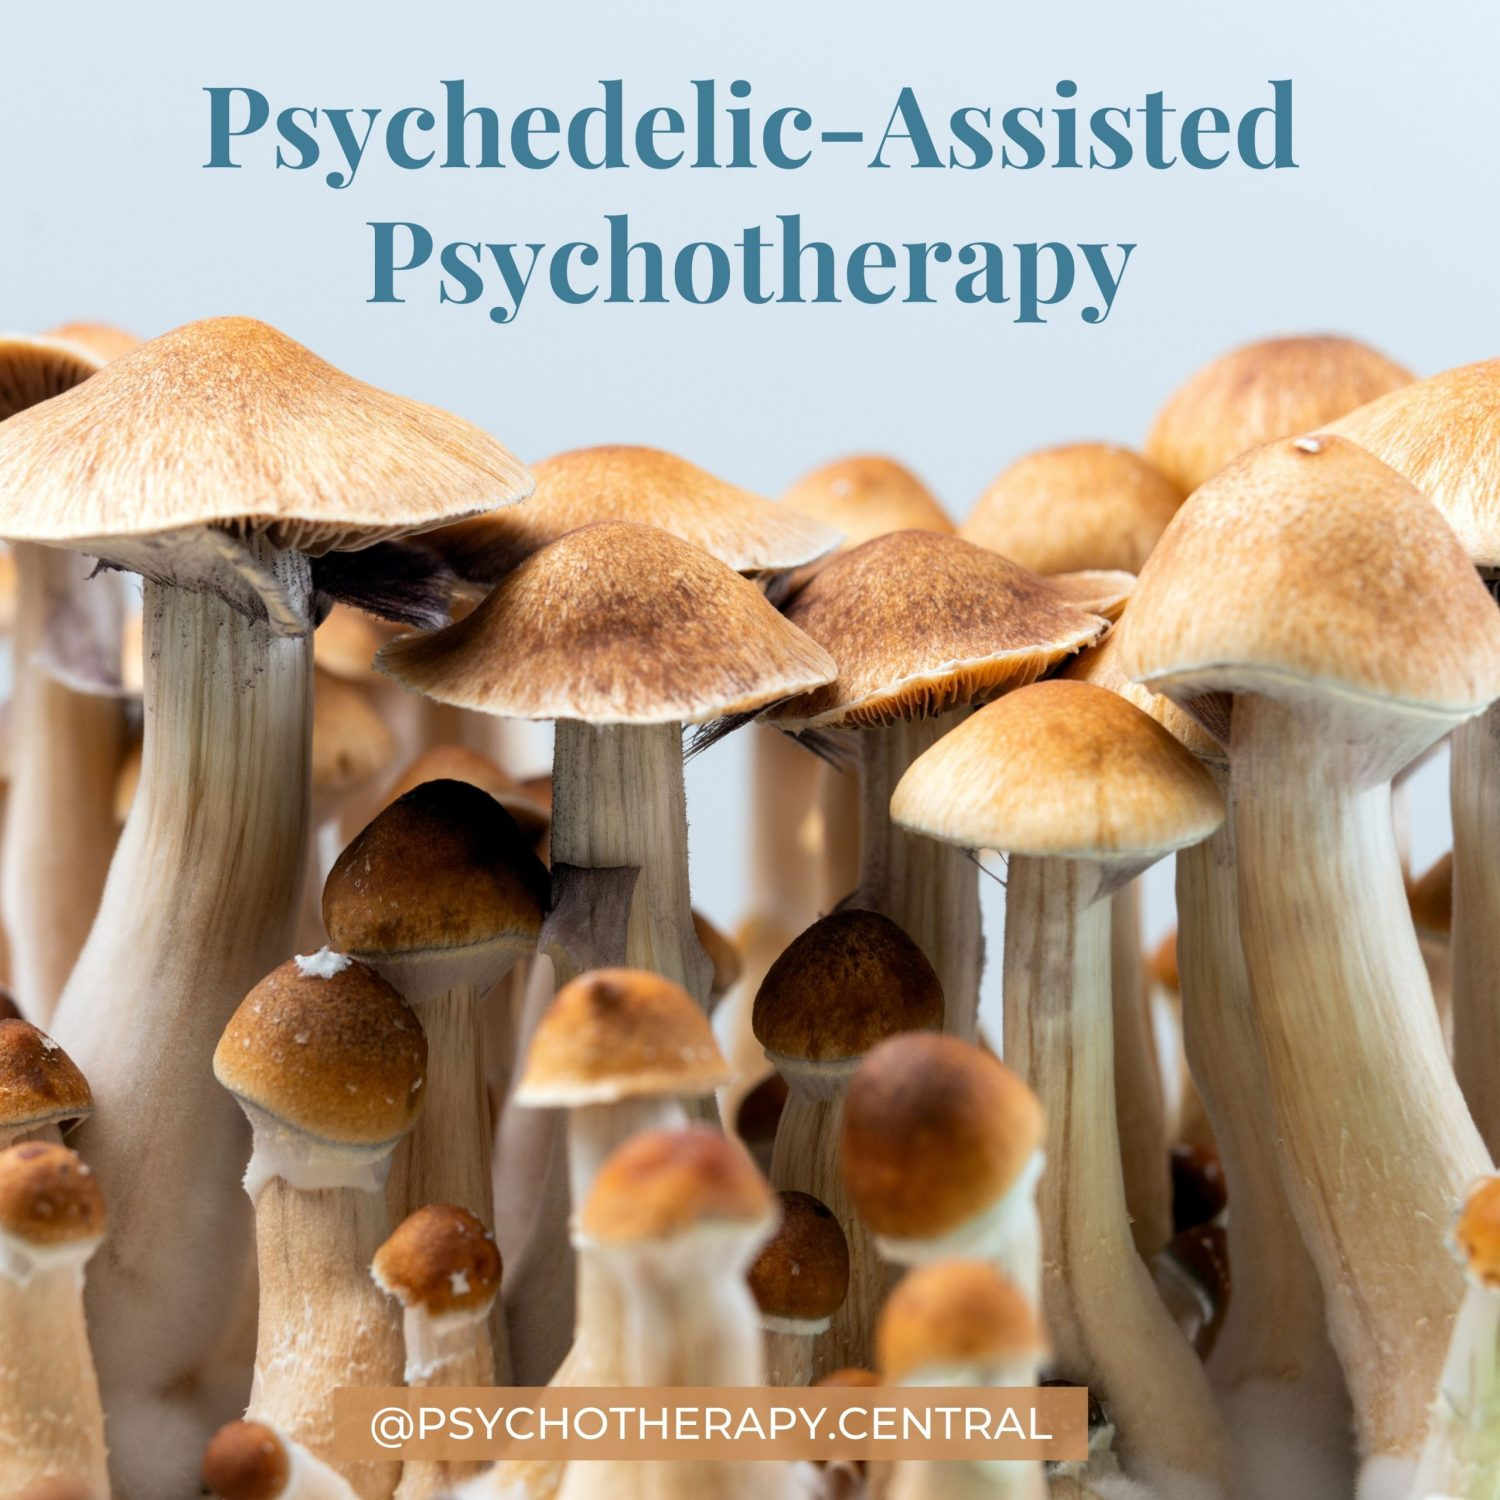 Psychadelic-Assisted Psychotherapy